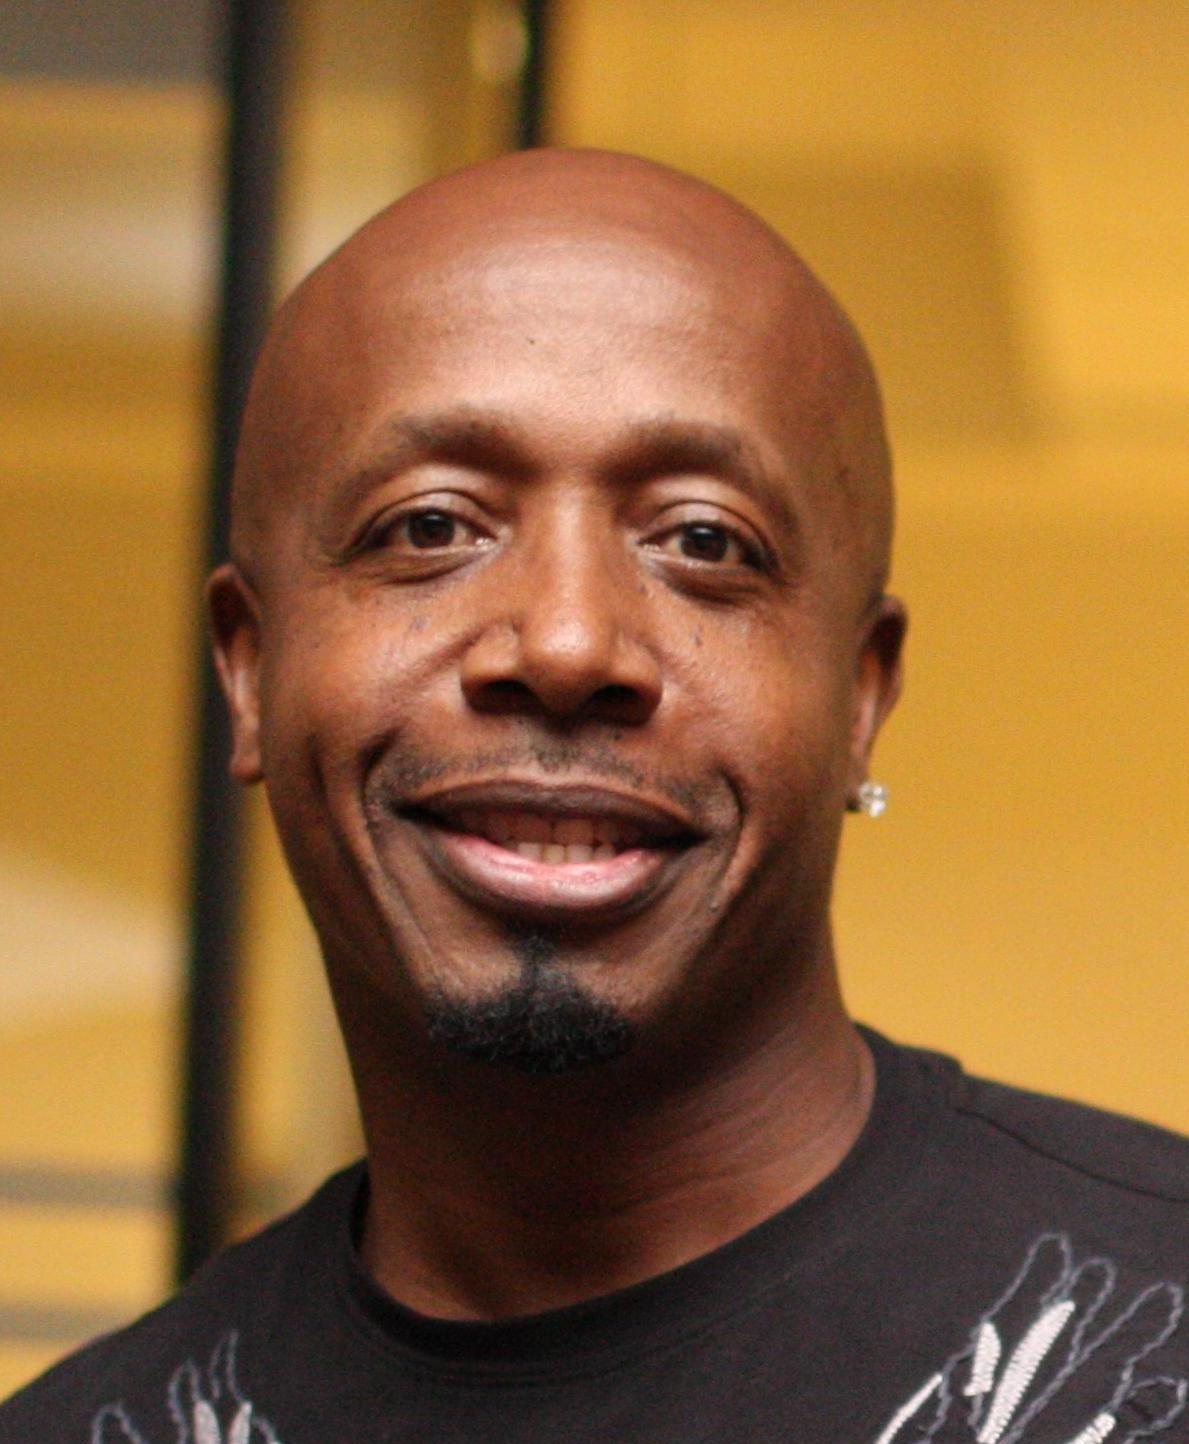 MC Hammer and his hot smile.jpg